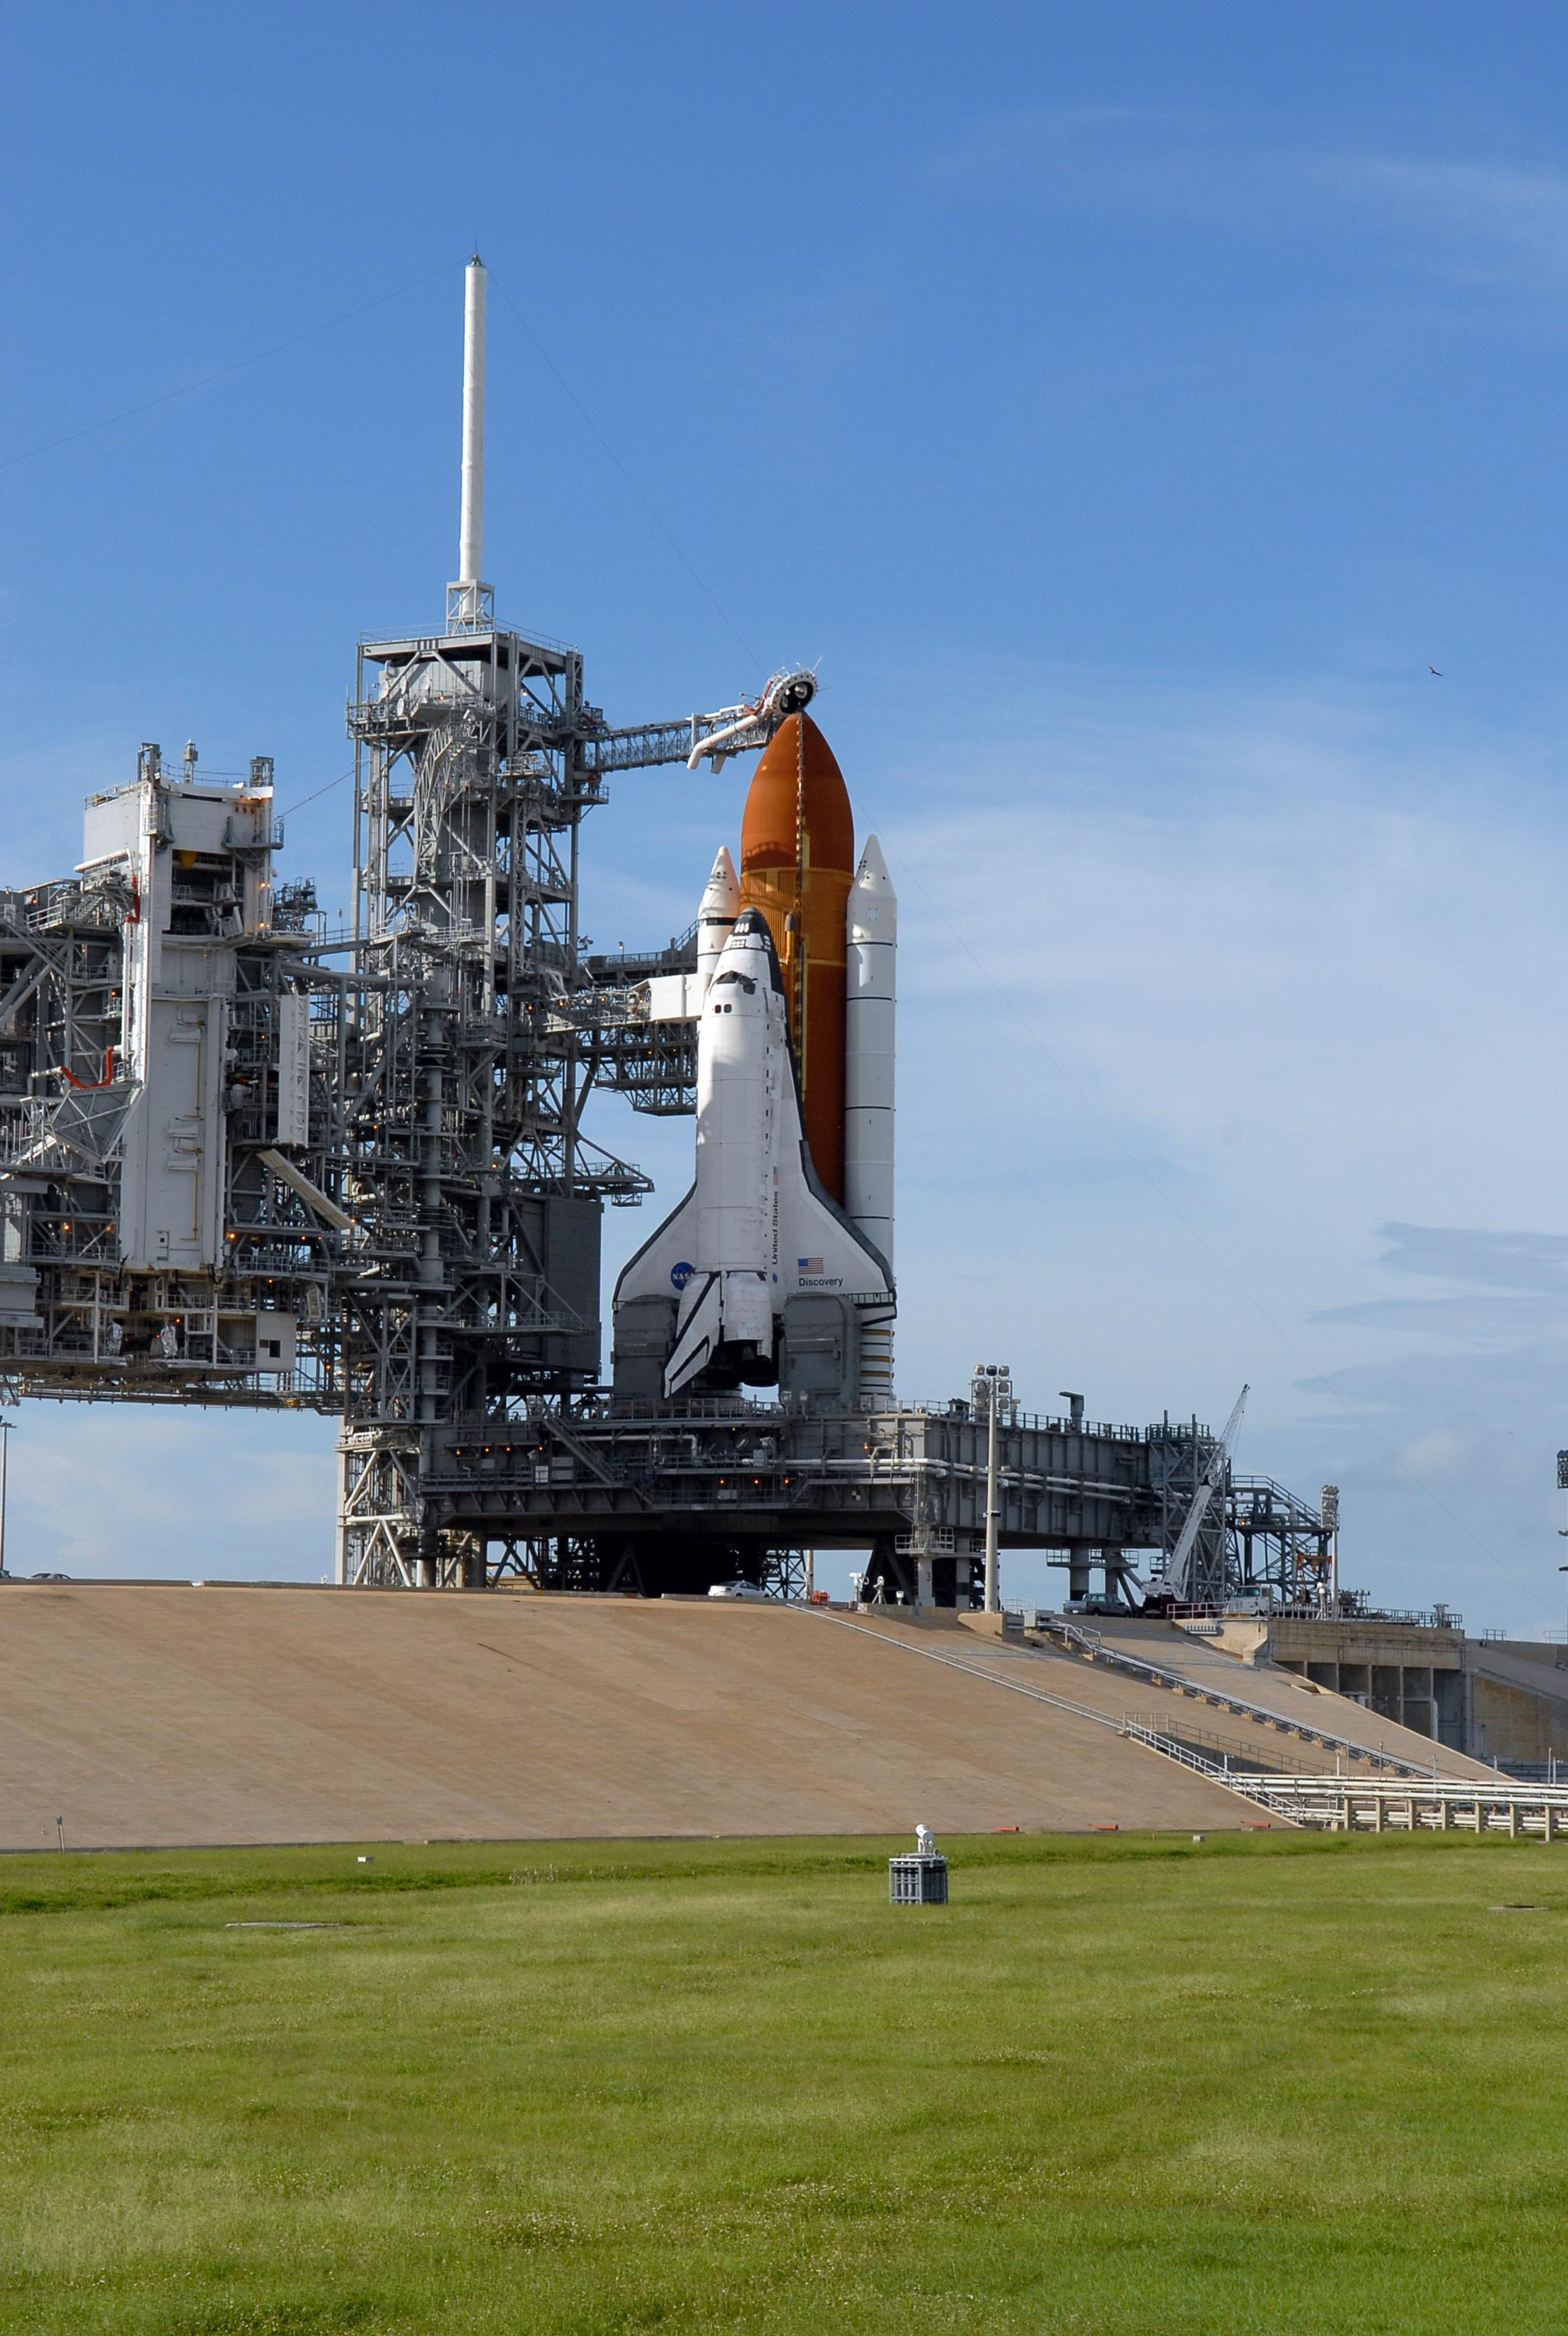 pad 39a launches graph - HD2014×3000